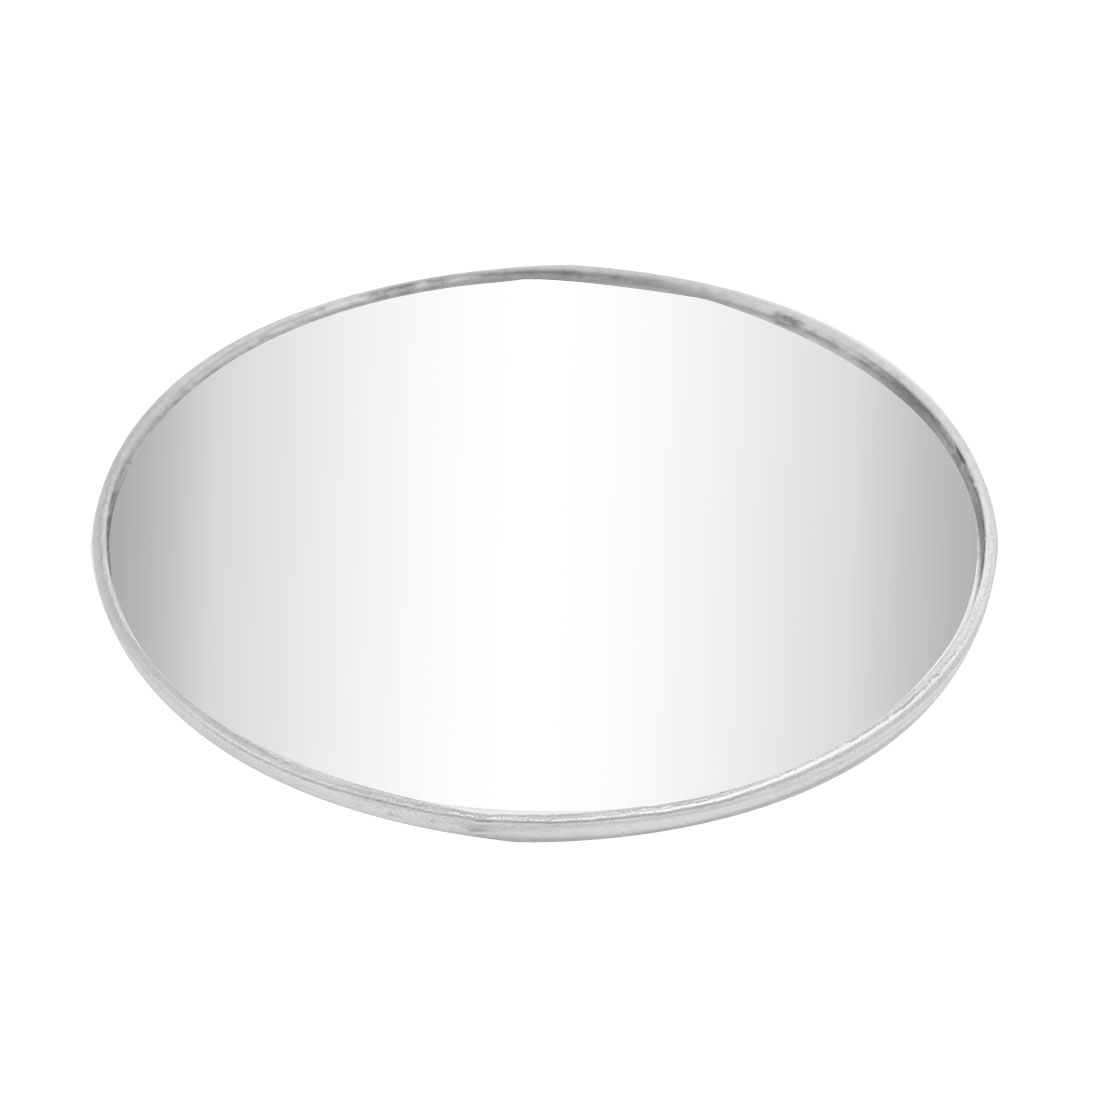 "Car Truck Vehicle 3"" Round Wide Angle Round Convex Blind Spot Mirror"